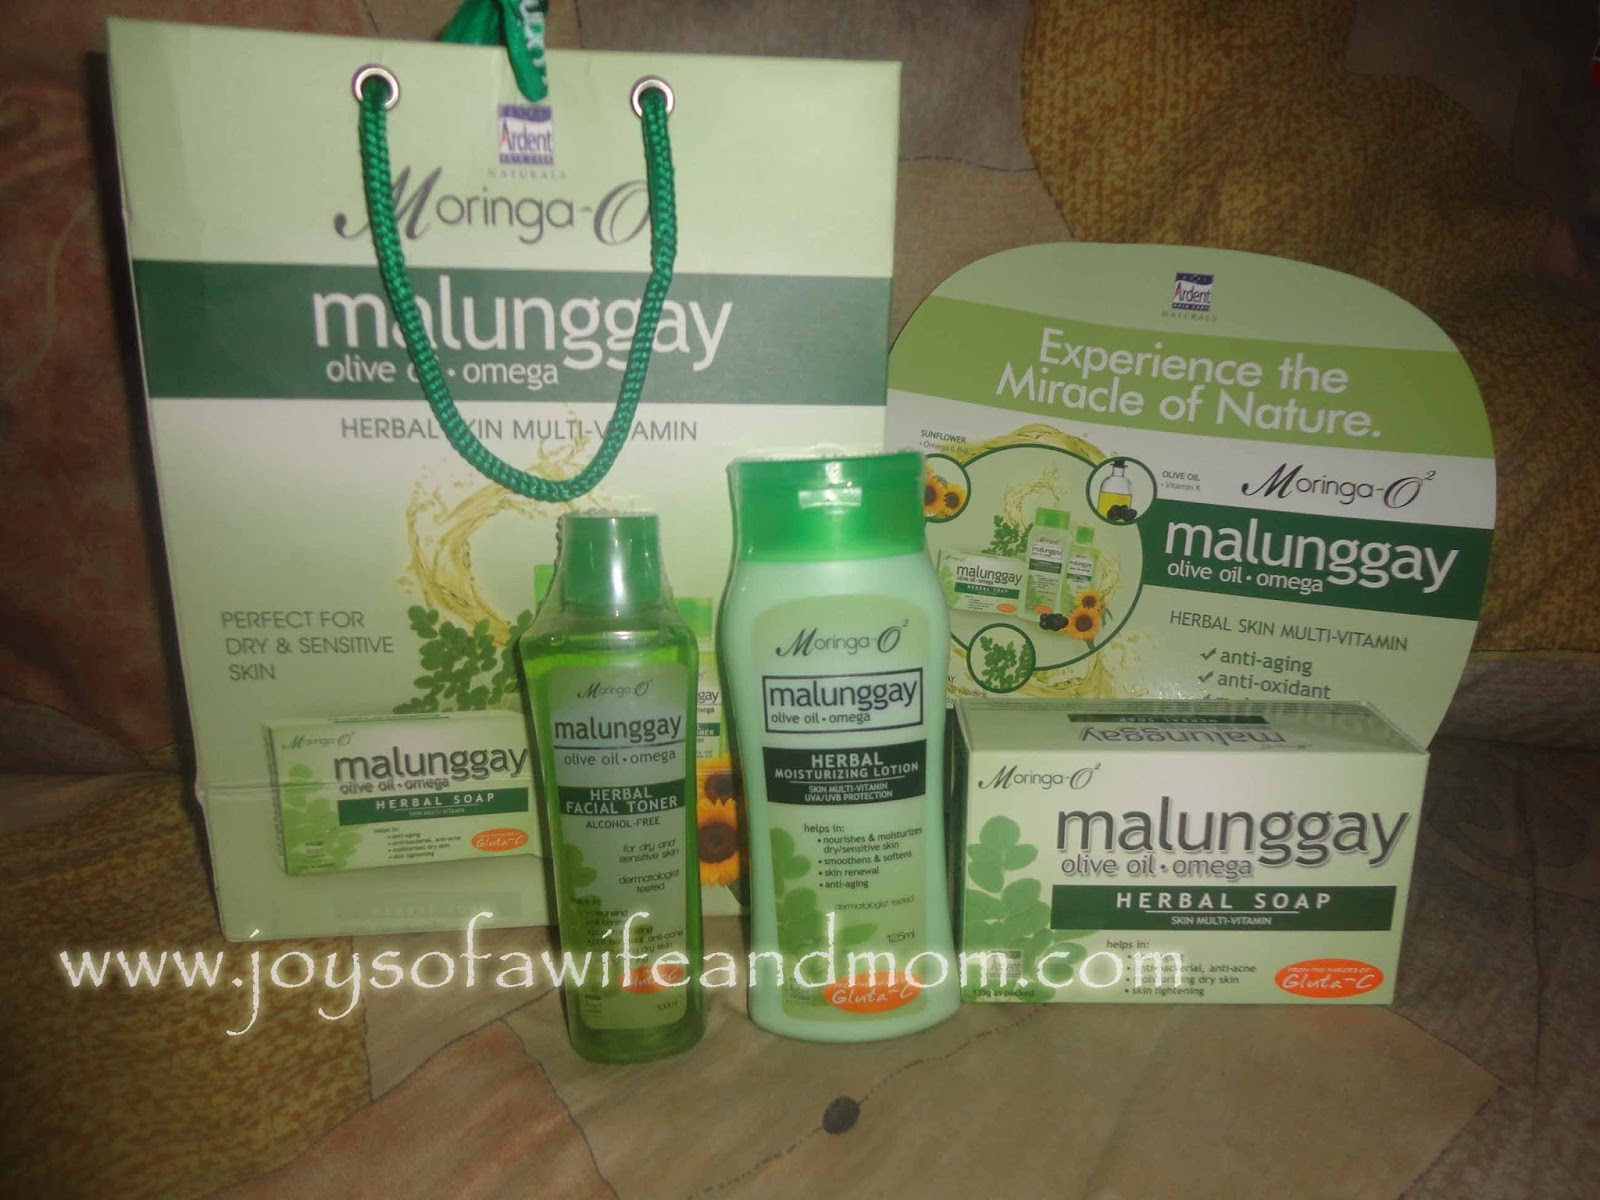 Moringa O2 Herbal Facial Toner, Herbal Lotion and Soap